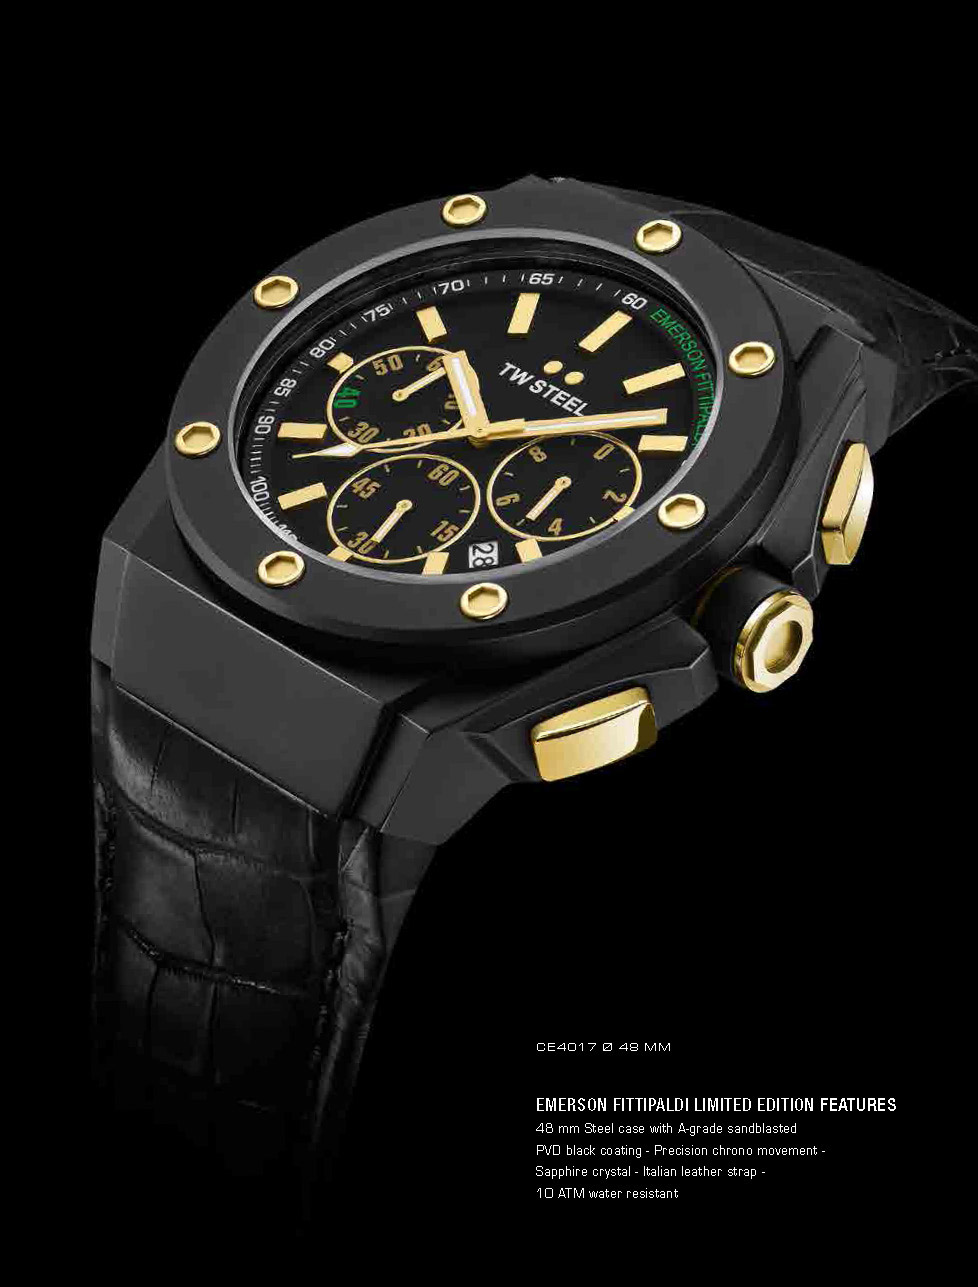 TW Steel Chronograph Emerson Fittipaldi